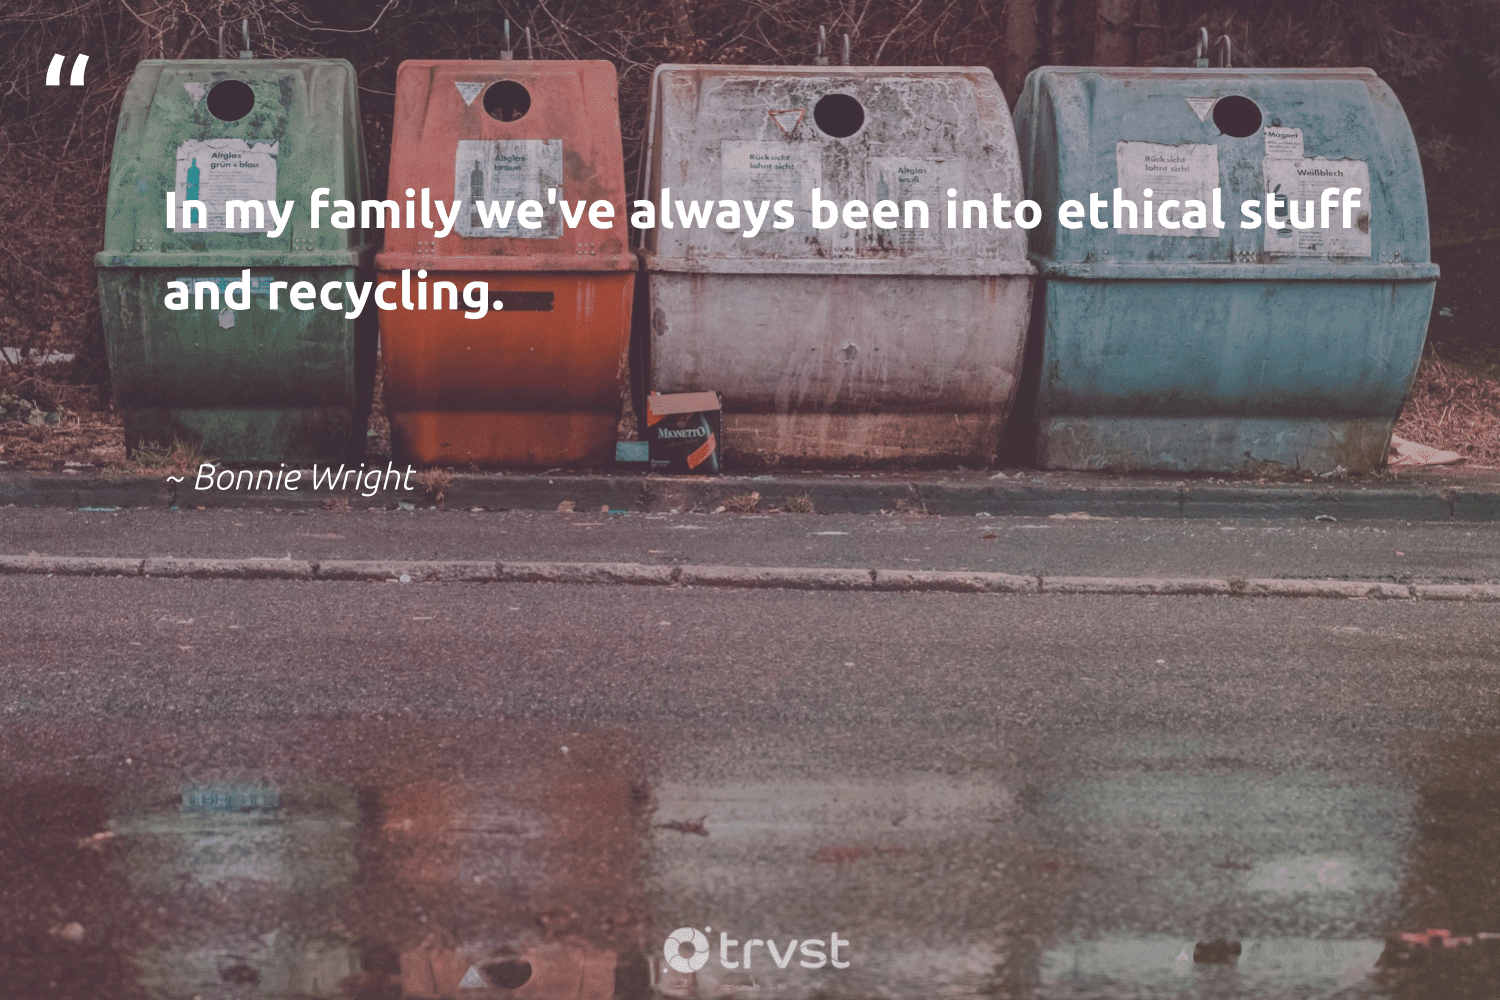 """""""In my family we've always been into ethical stuff and recycling.""""  - Bonnie Wright #trvst #quotes #recycling #ethical #family #upcycling #trash #sustainability #socialchange #recycled #planetearthfirst #changeahabit"""